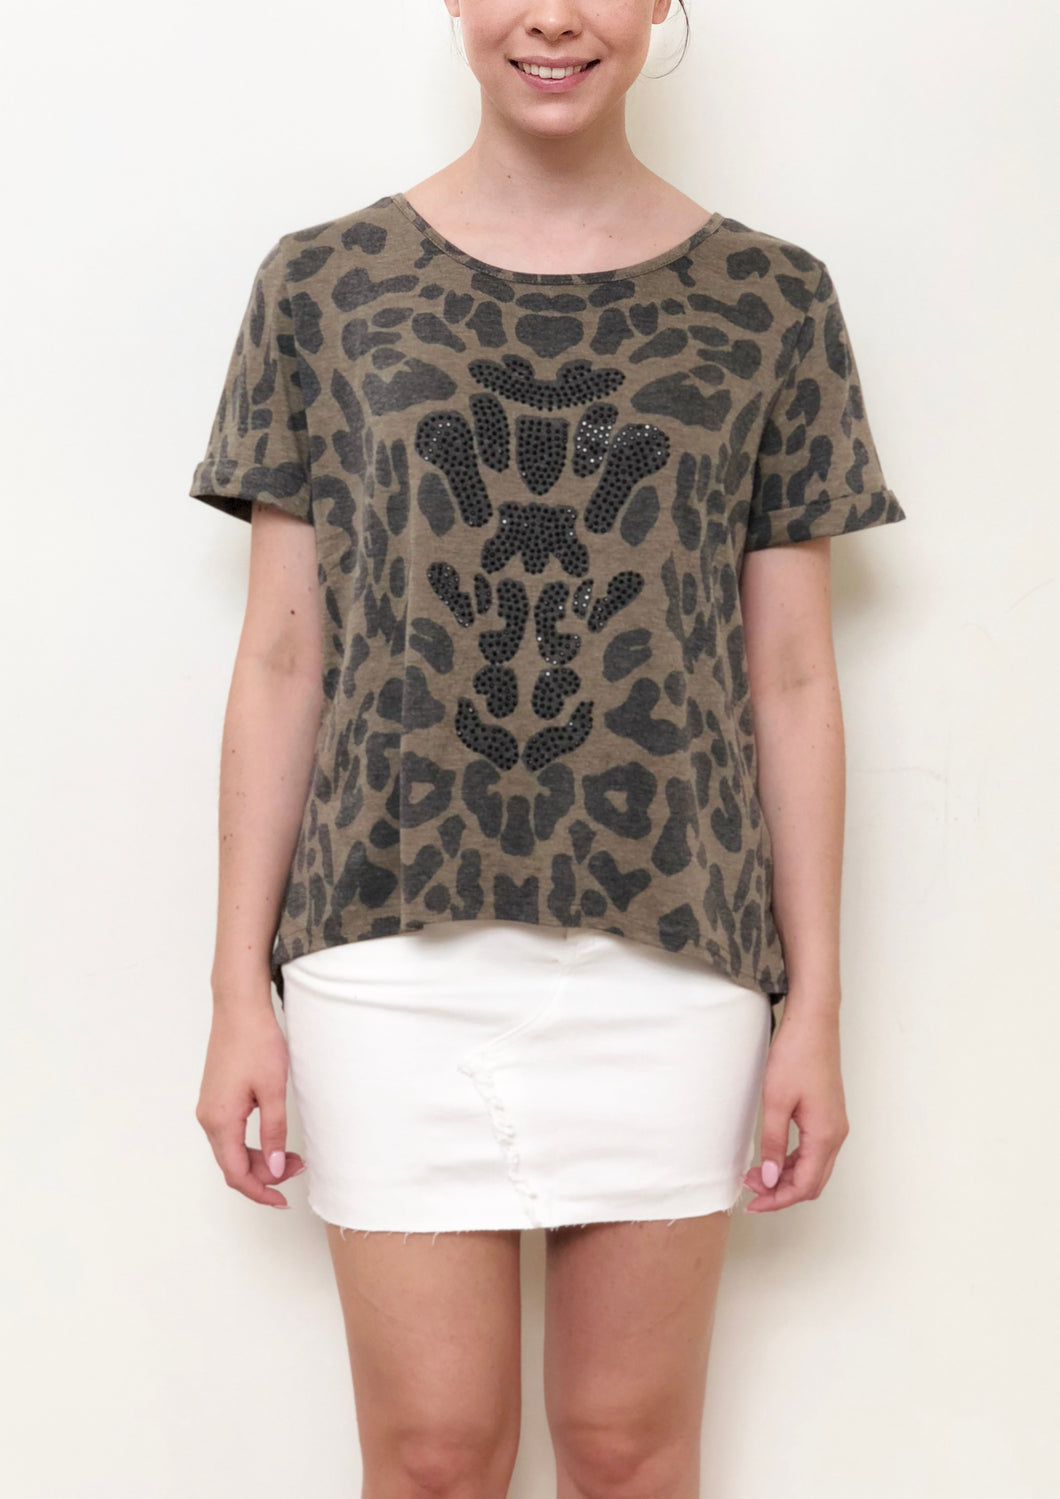 MC0073SS Khaki Leopard Embellished Top (Pack)